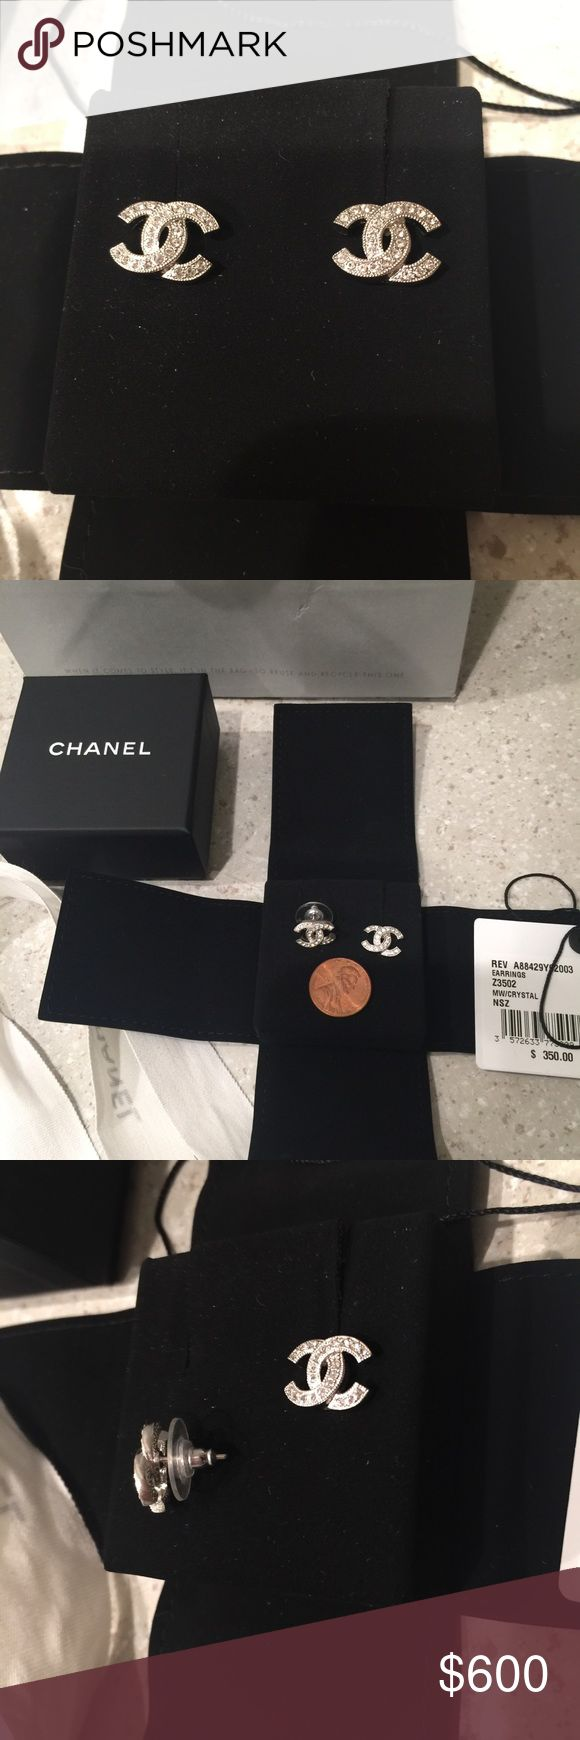 Chanel earrings Brand new. Just bought on 11/19/2016. Price is higher due to rarity. 🅿️🅿️ only and no trade. Please email me at  tthellokitty7043@gmail.com for further questions. CHANEL Jewelry Earrings